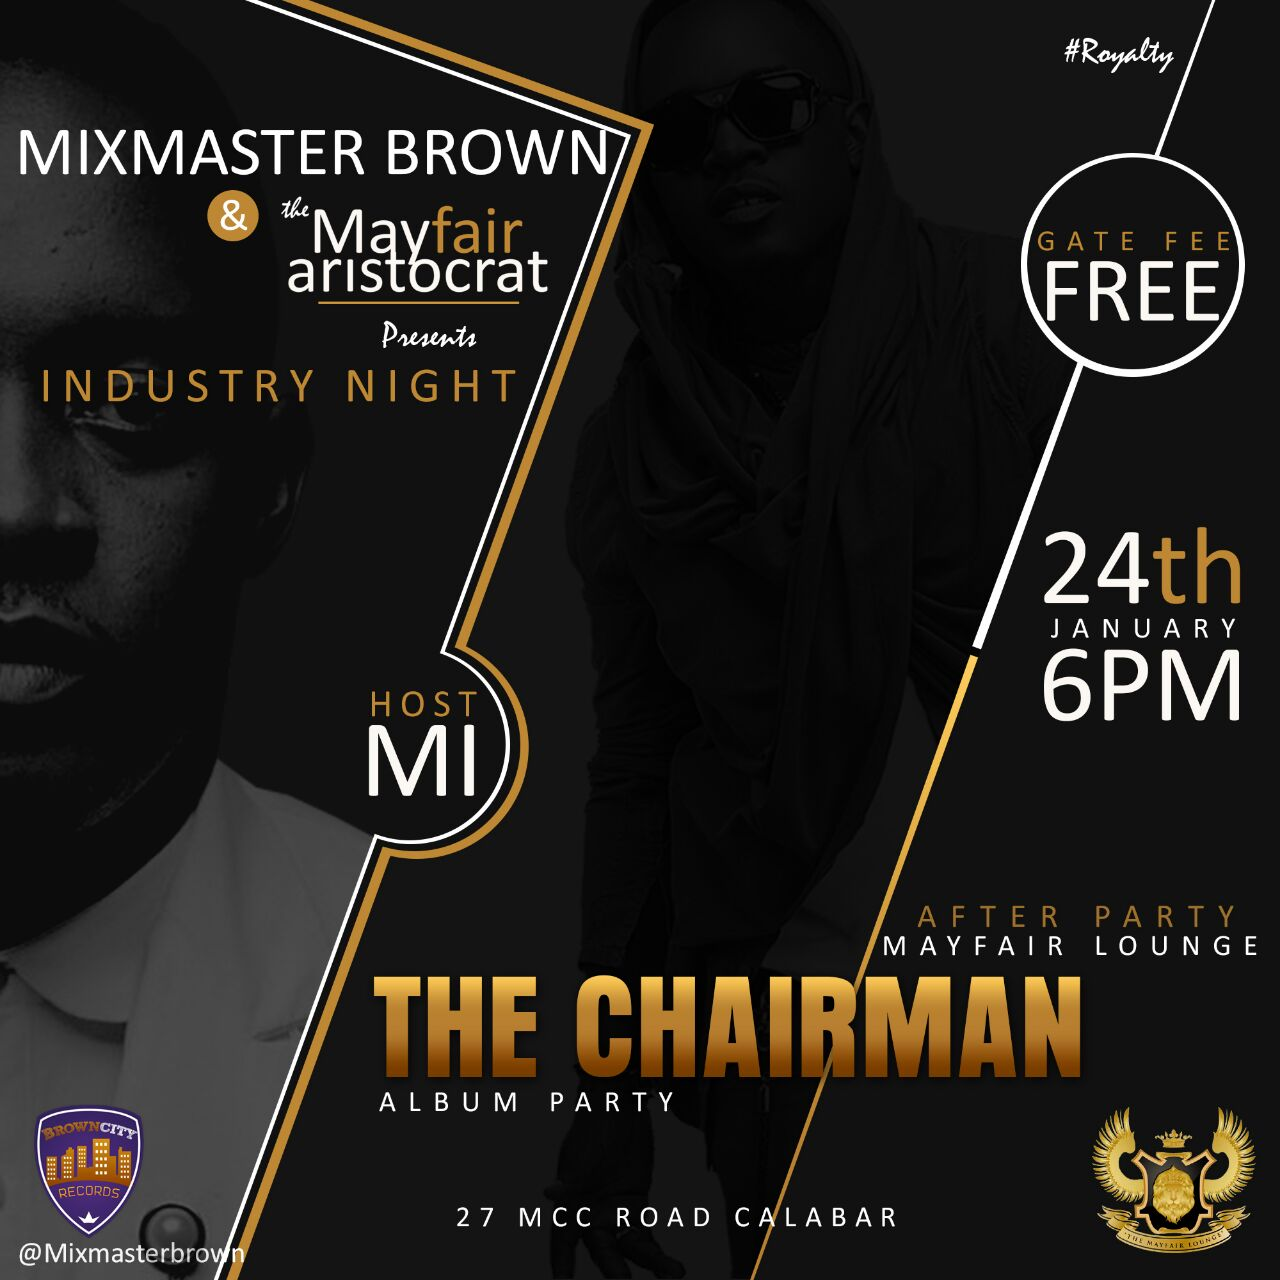 """Mixmasterbrown/Mayfair"